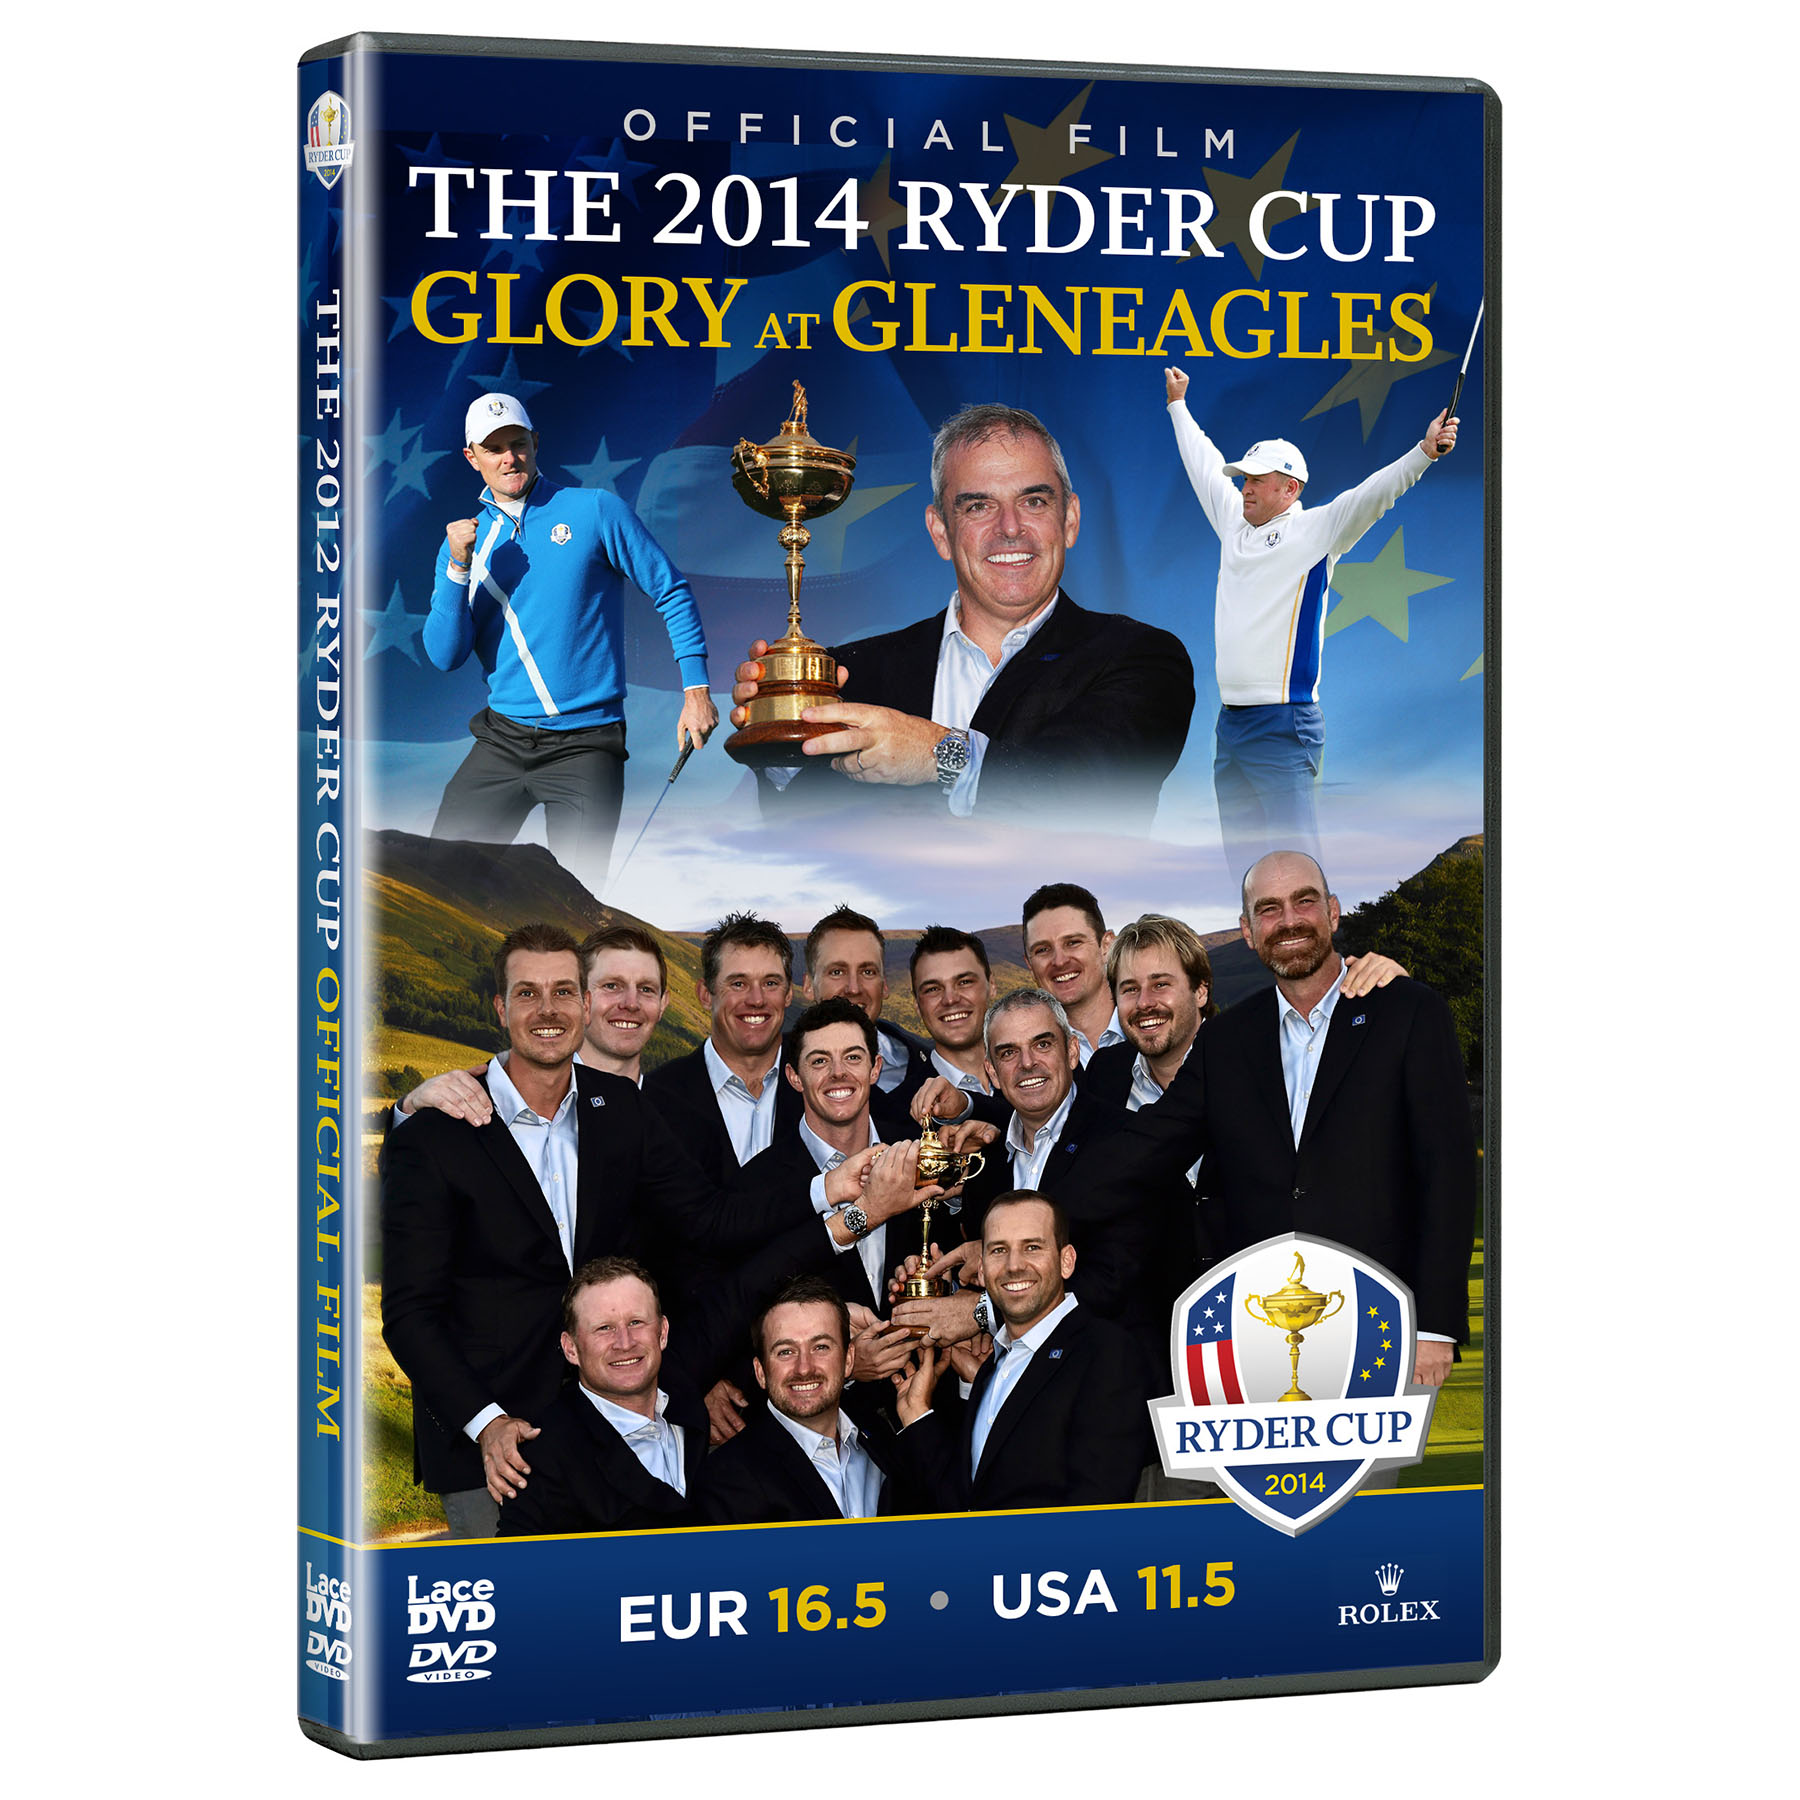 The 2014 Ryder Cup Official Film (40th)